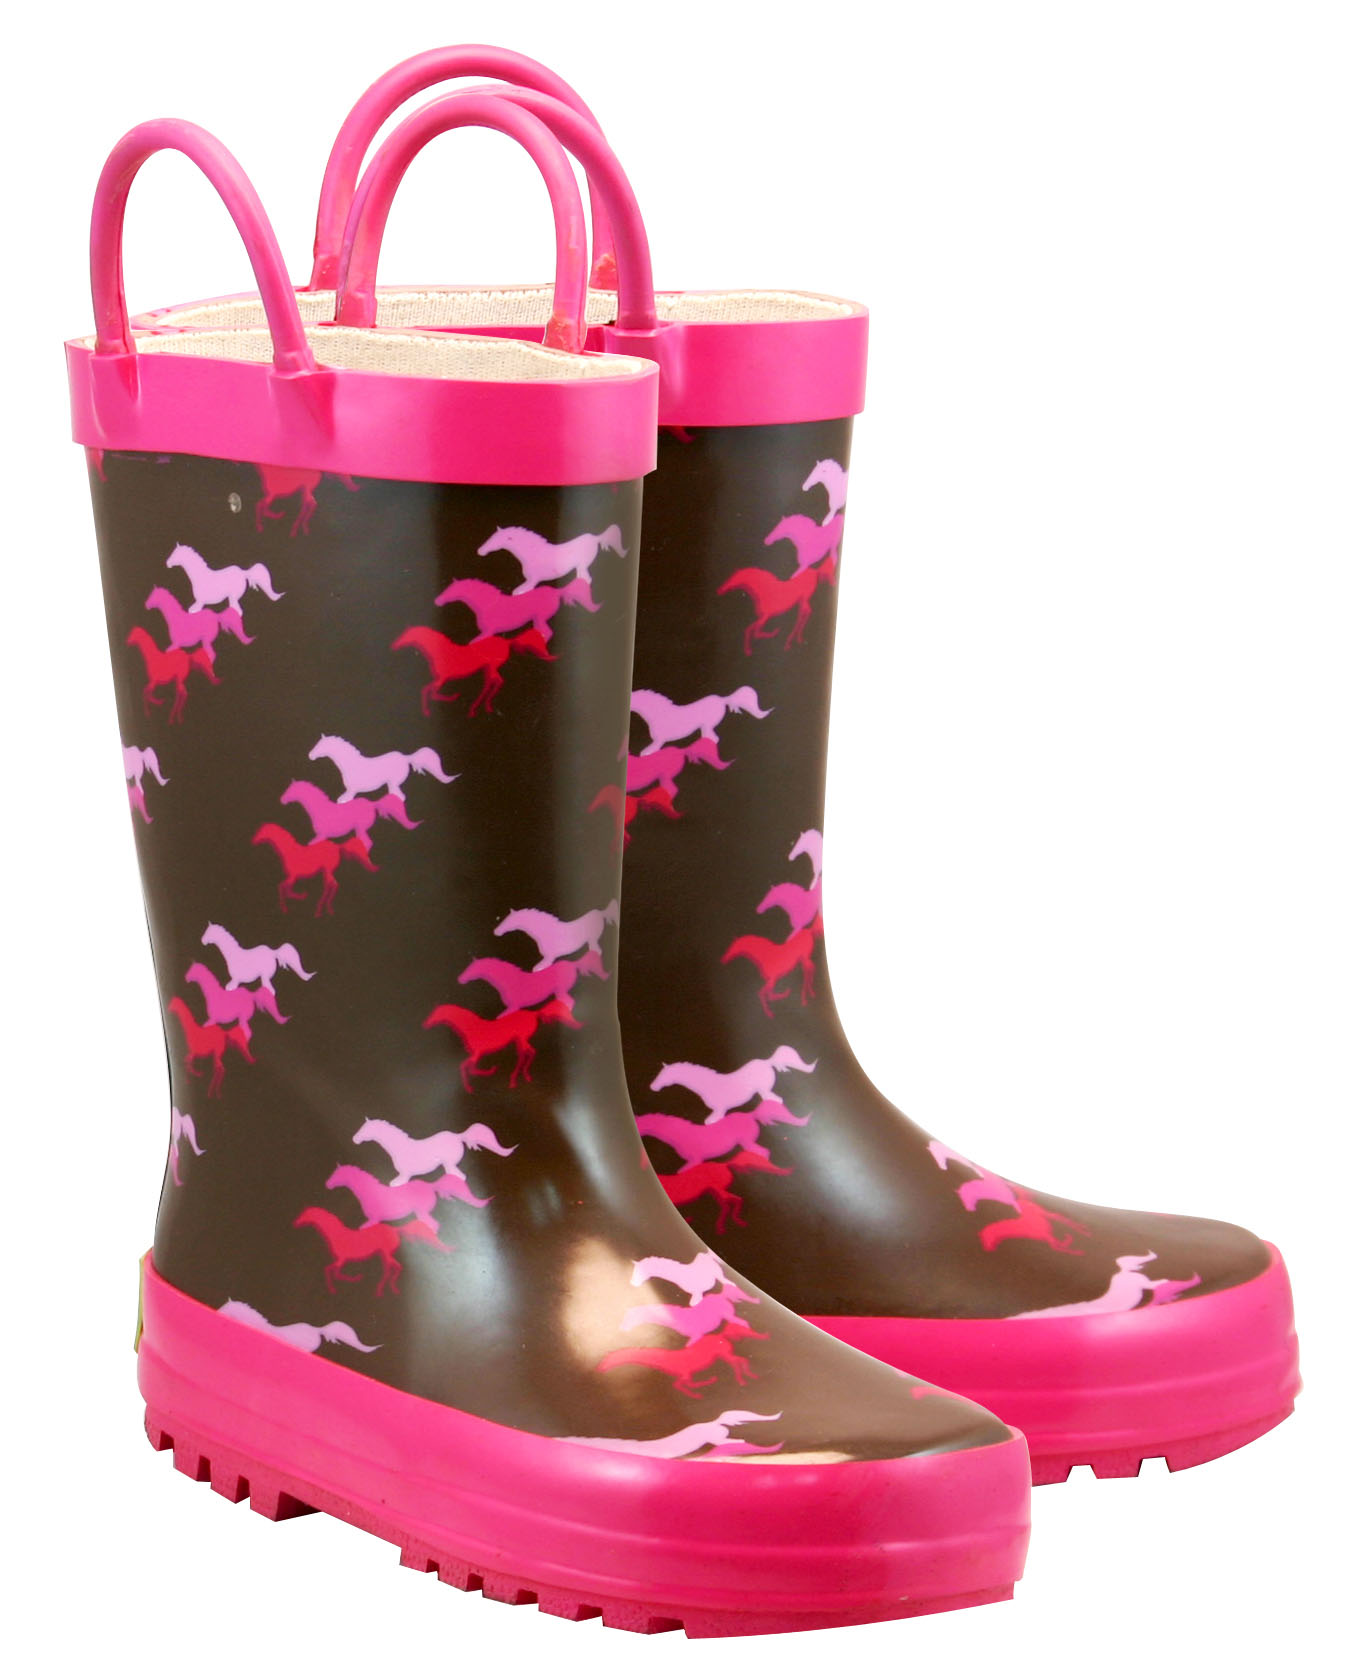 Youth Rain Boots w7vN0Lq5